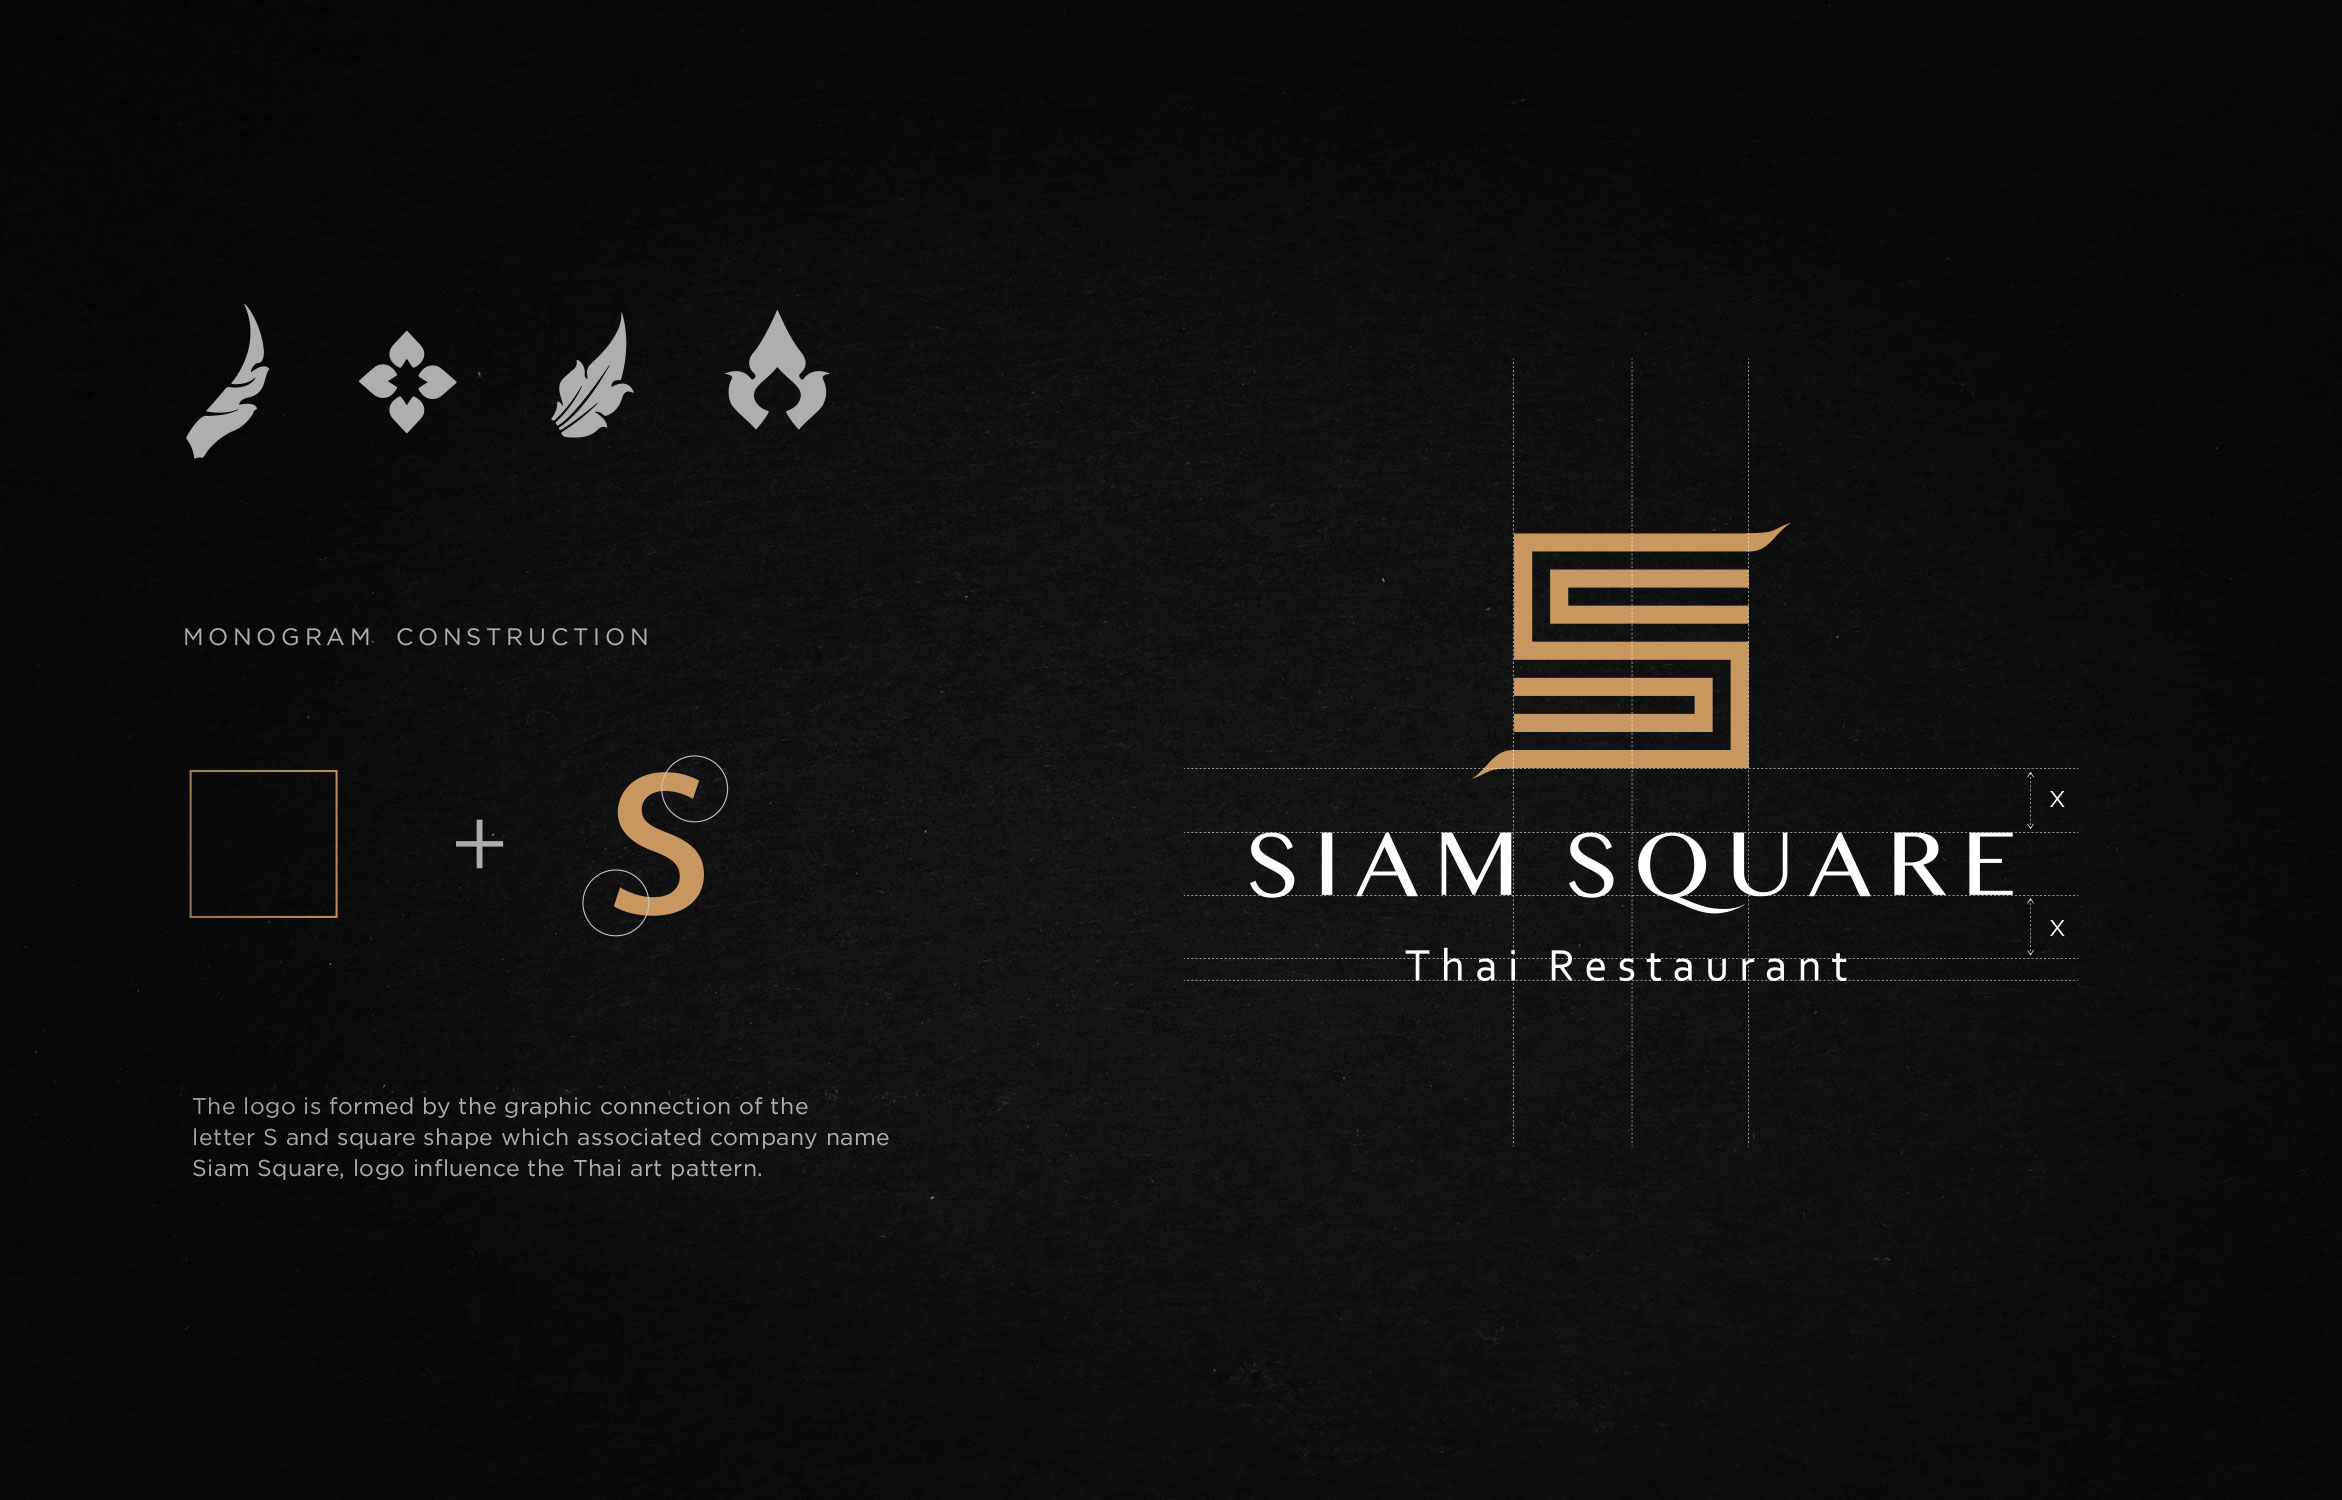 siam-square-projects-1